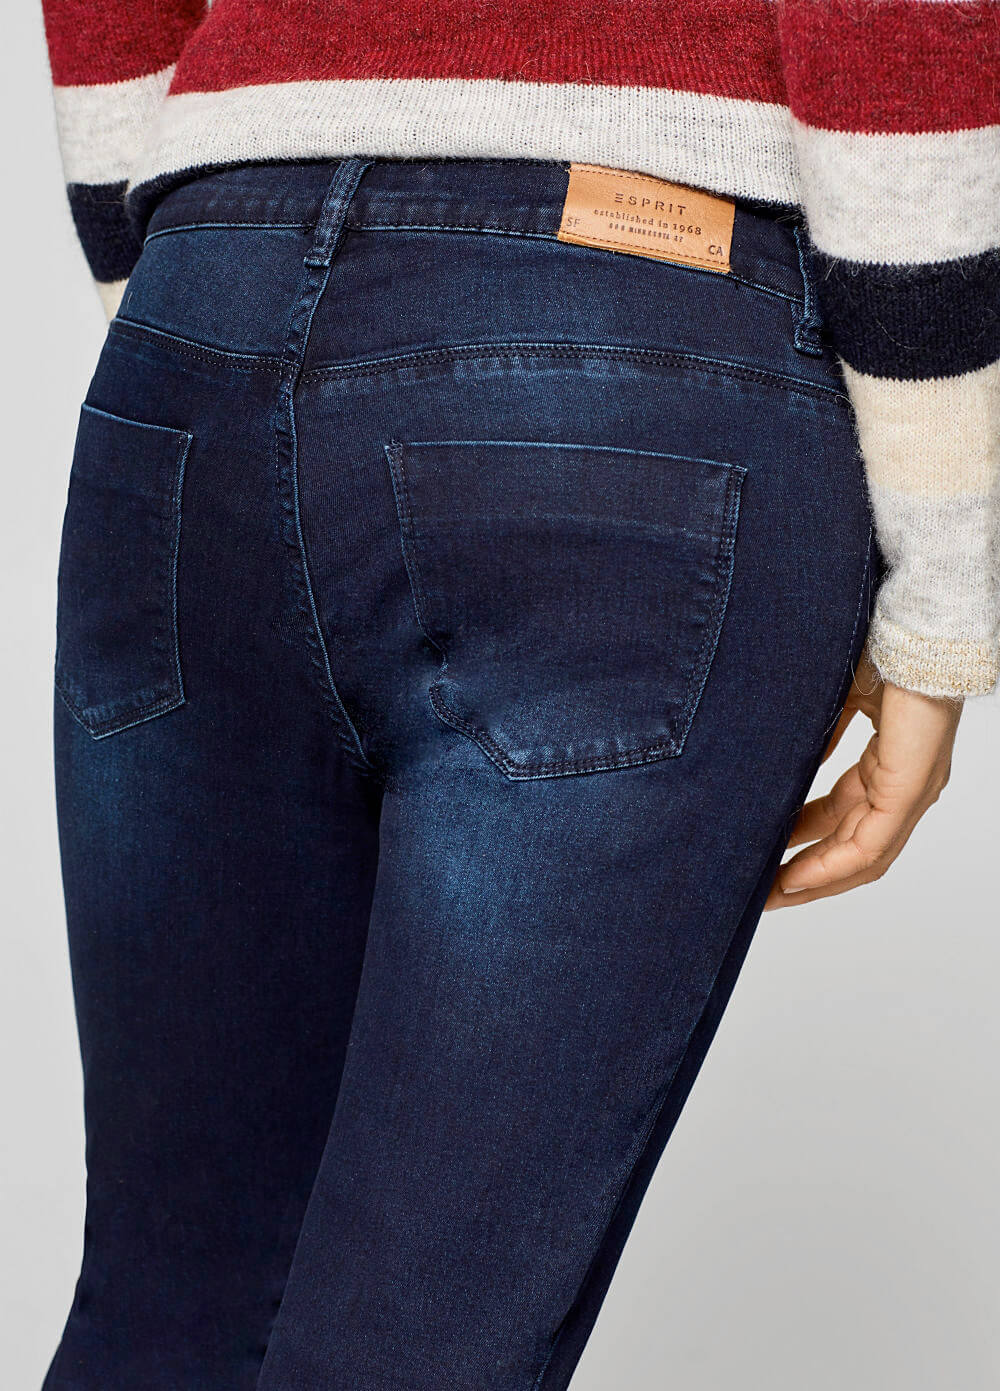 Under Bump Maternity Denim Jeggings by Esprit